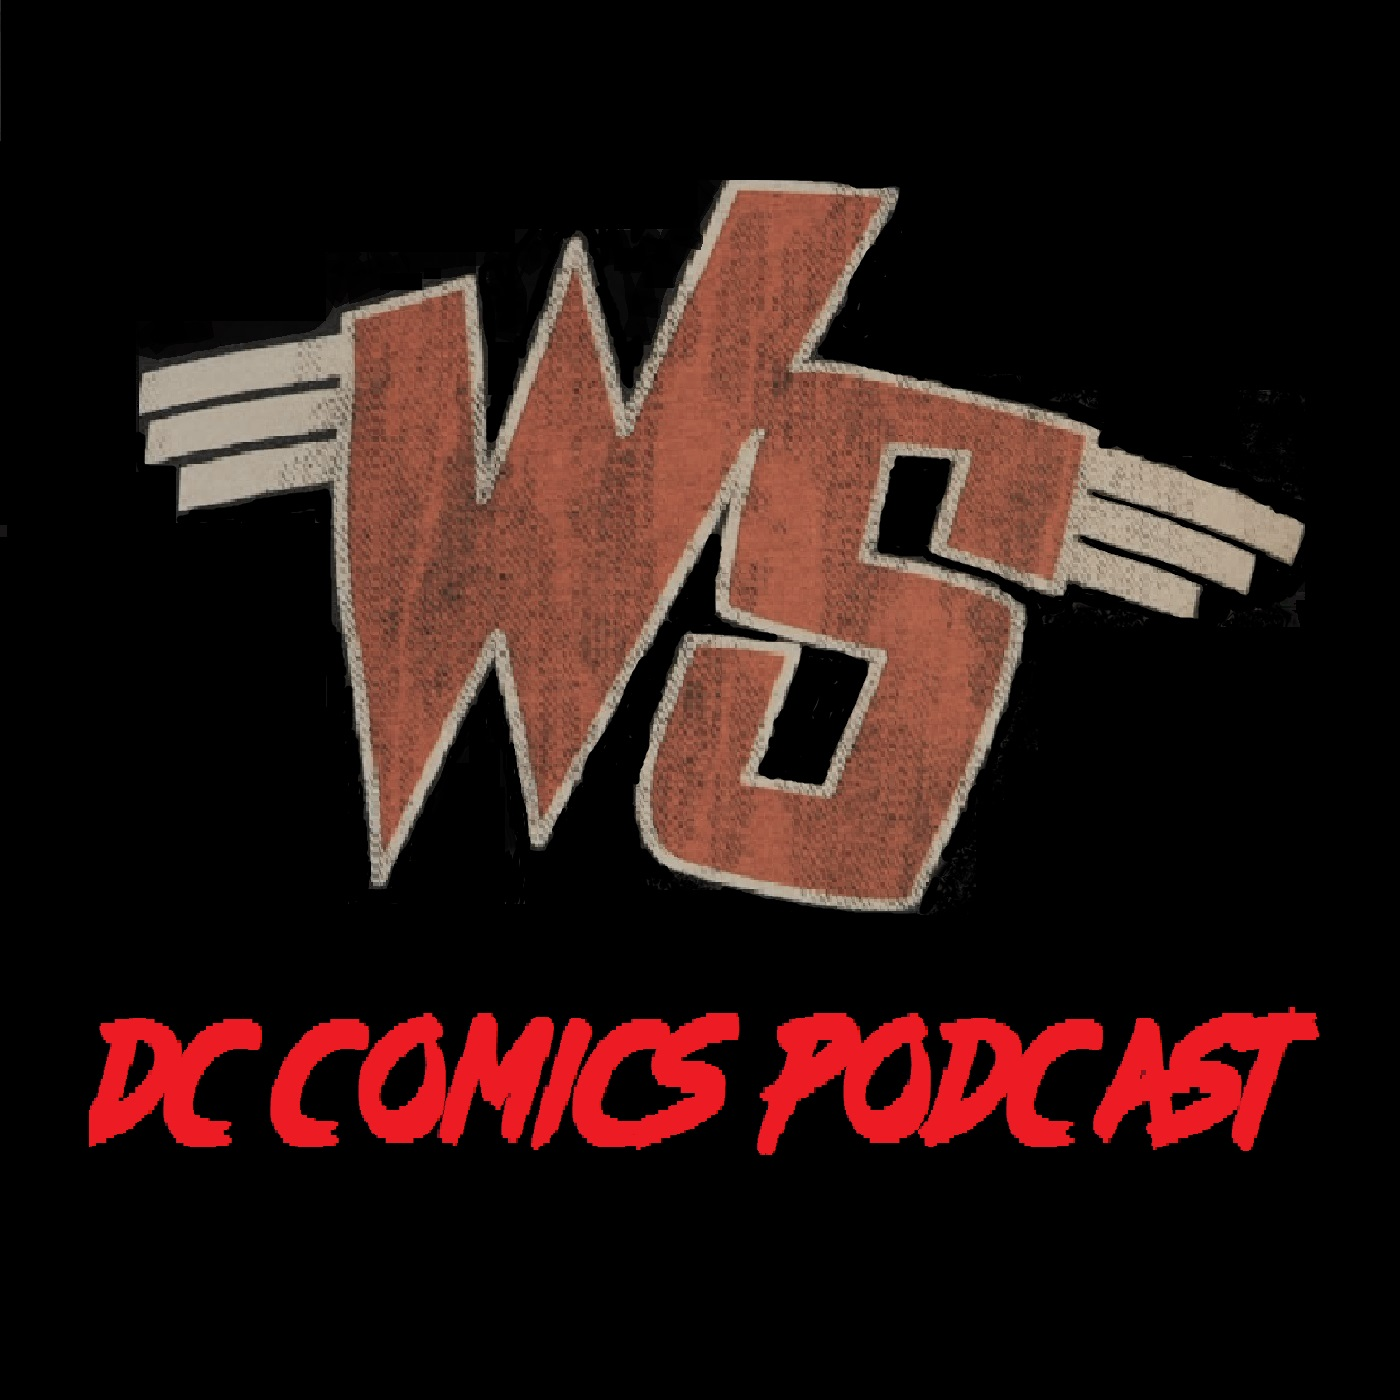 Episode 20: Convergence, Mae West and The Duke of Wellington / Weird Science DC Comics Podcast